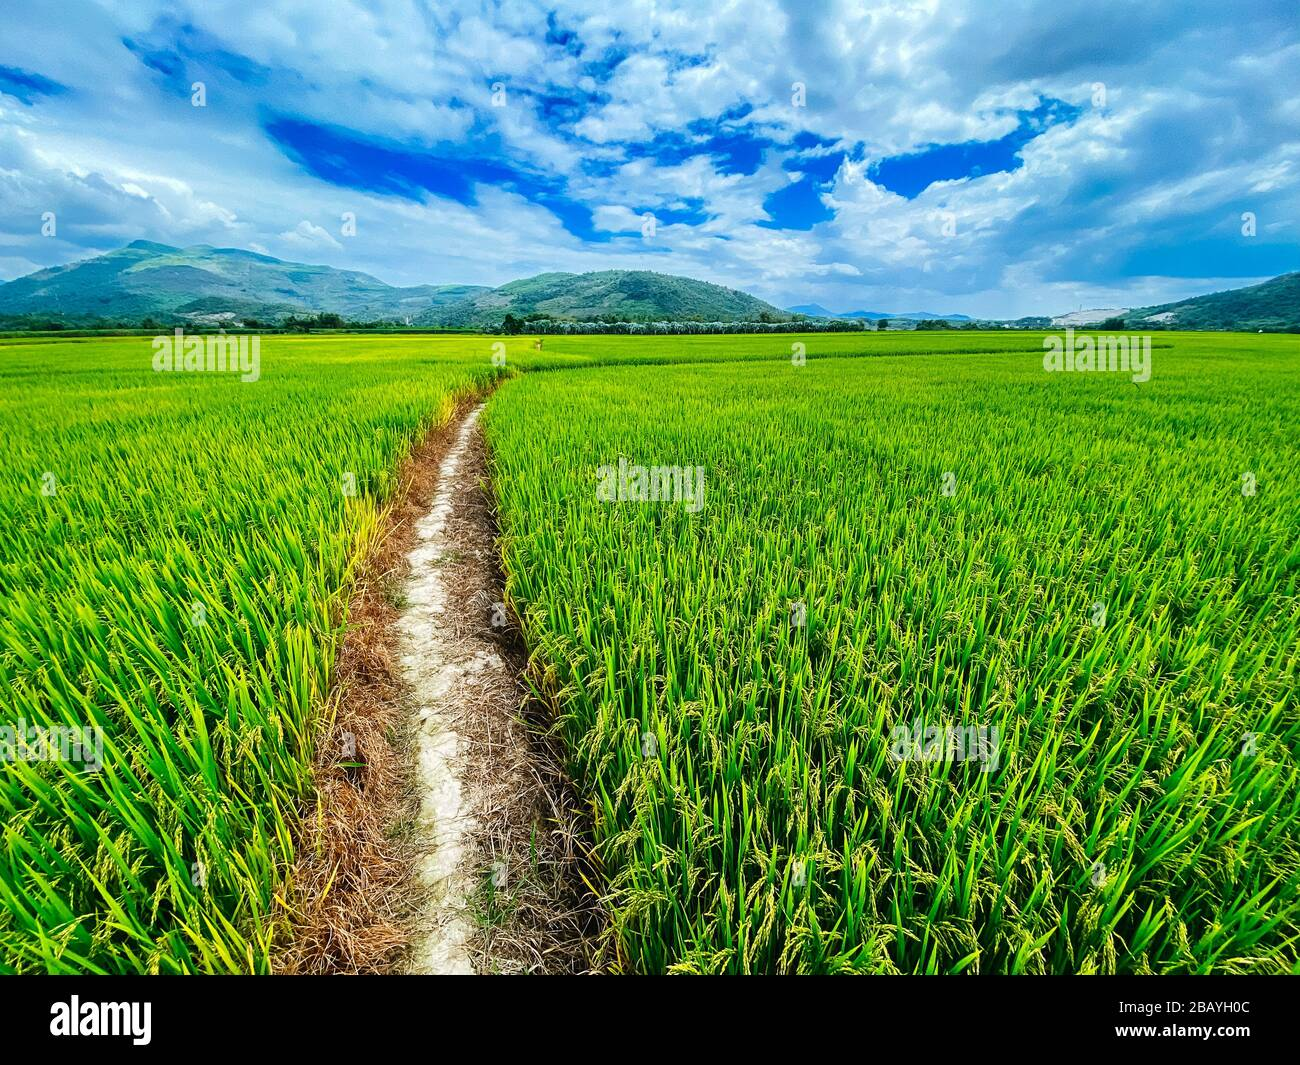 Rice field, green rice sprouts in the meadow. Young green rice. Farmland. Mountain view, agriculture in Asia. Stock Photo